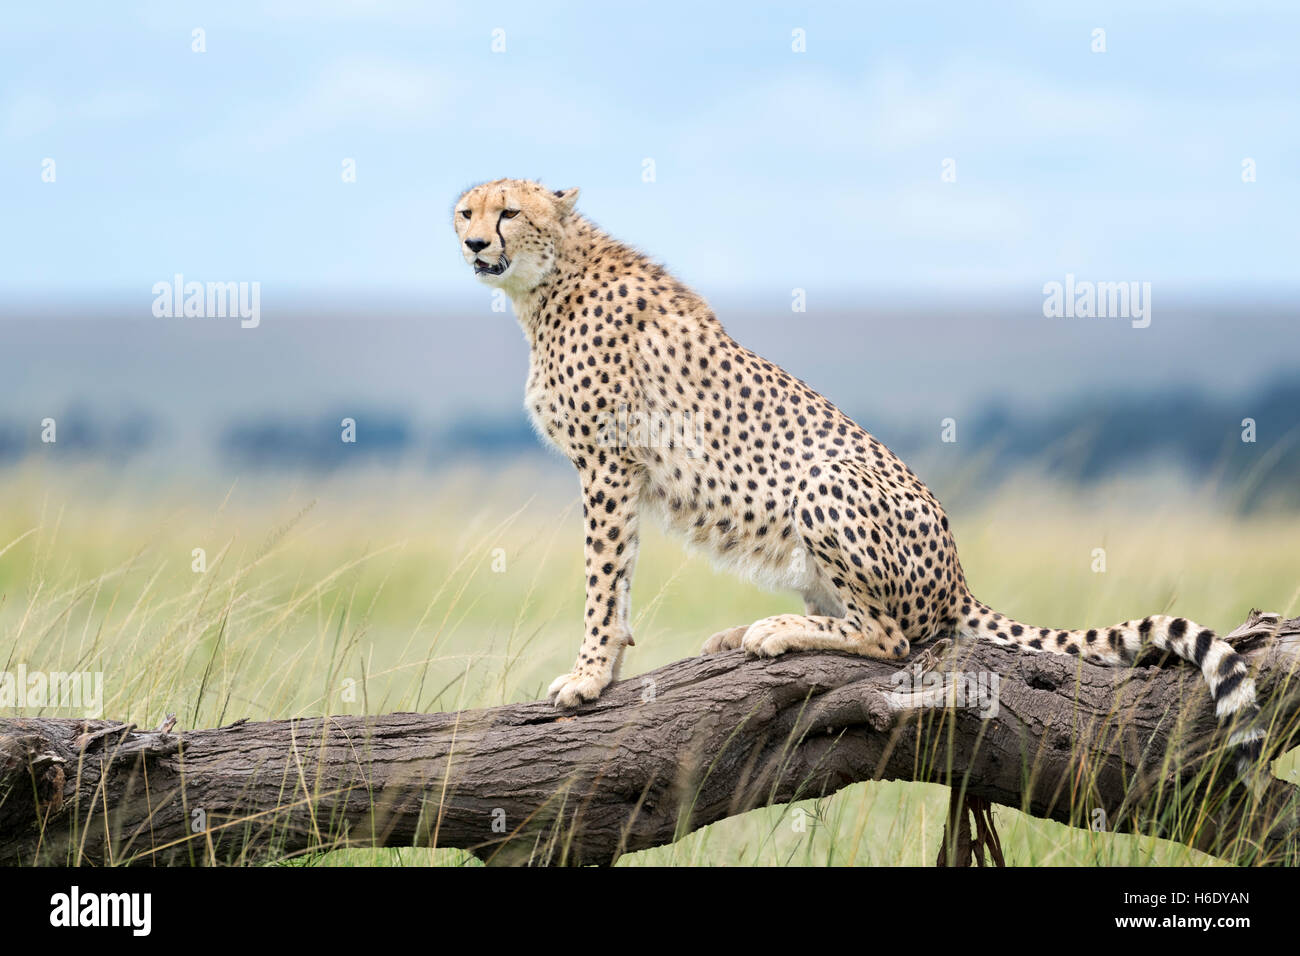 Cheetah (Acinonix jubatus) sitting on fallen tree, Maasai Mara National Reserve, Kenya - Stock Image